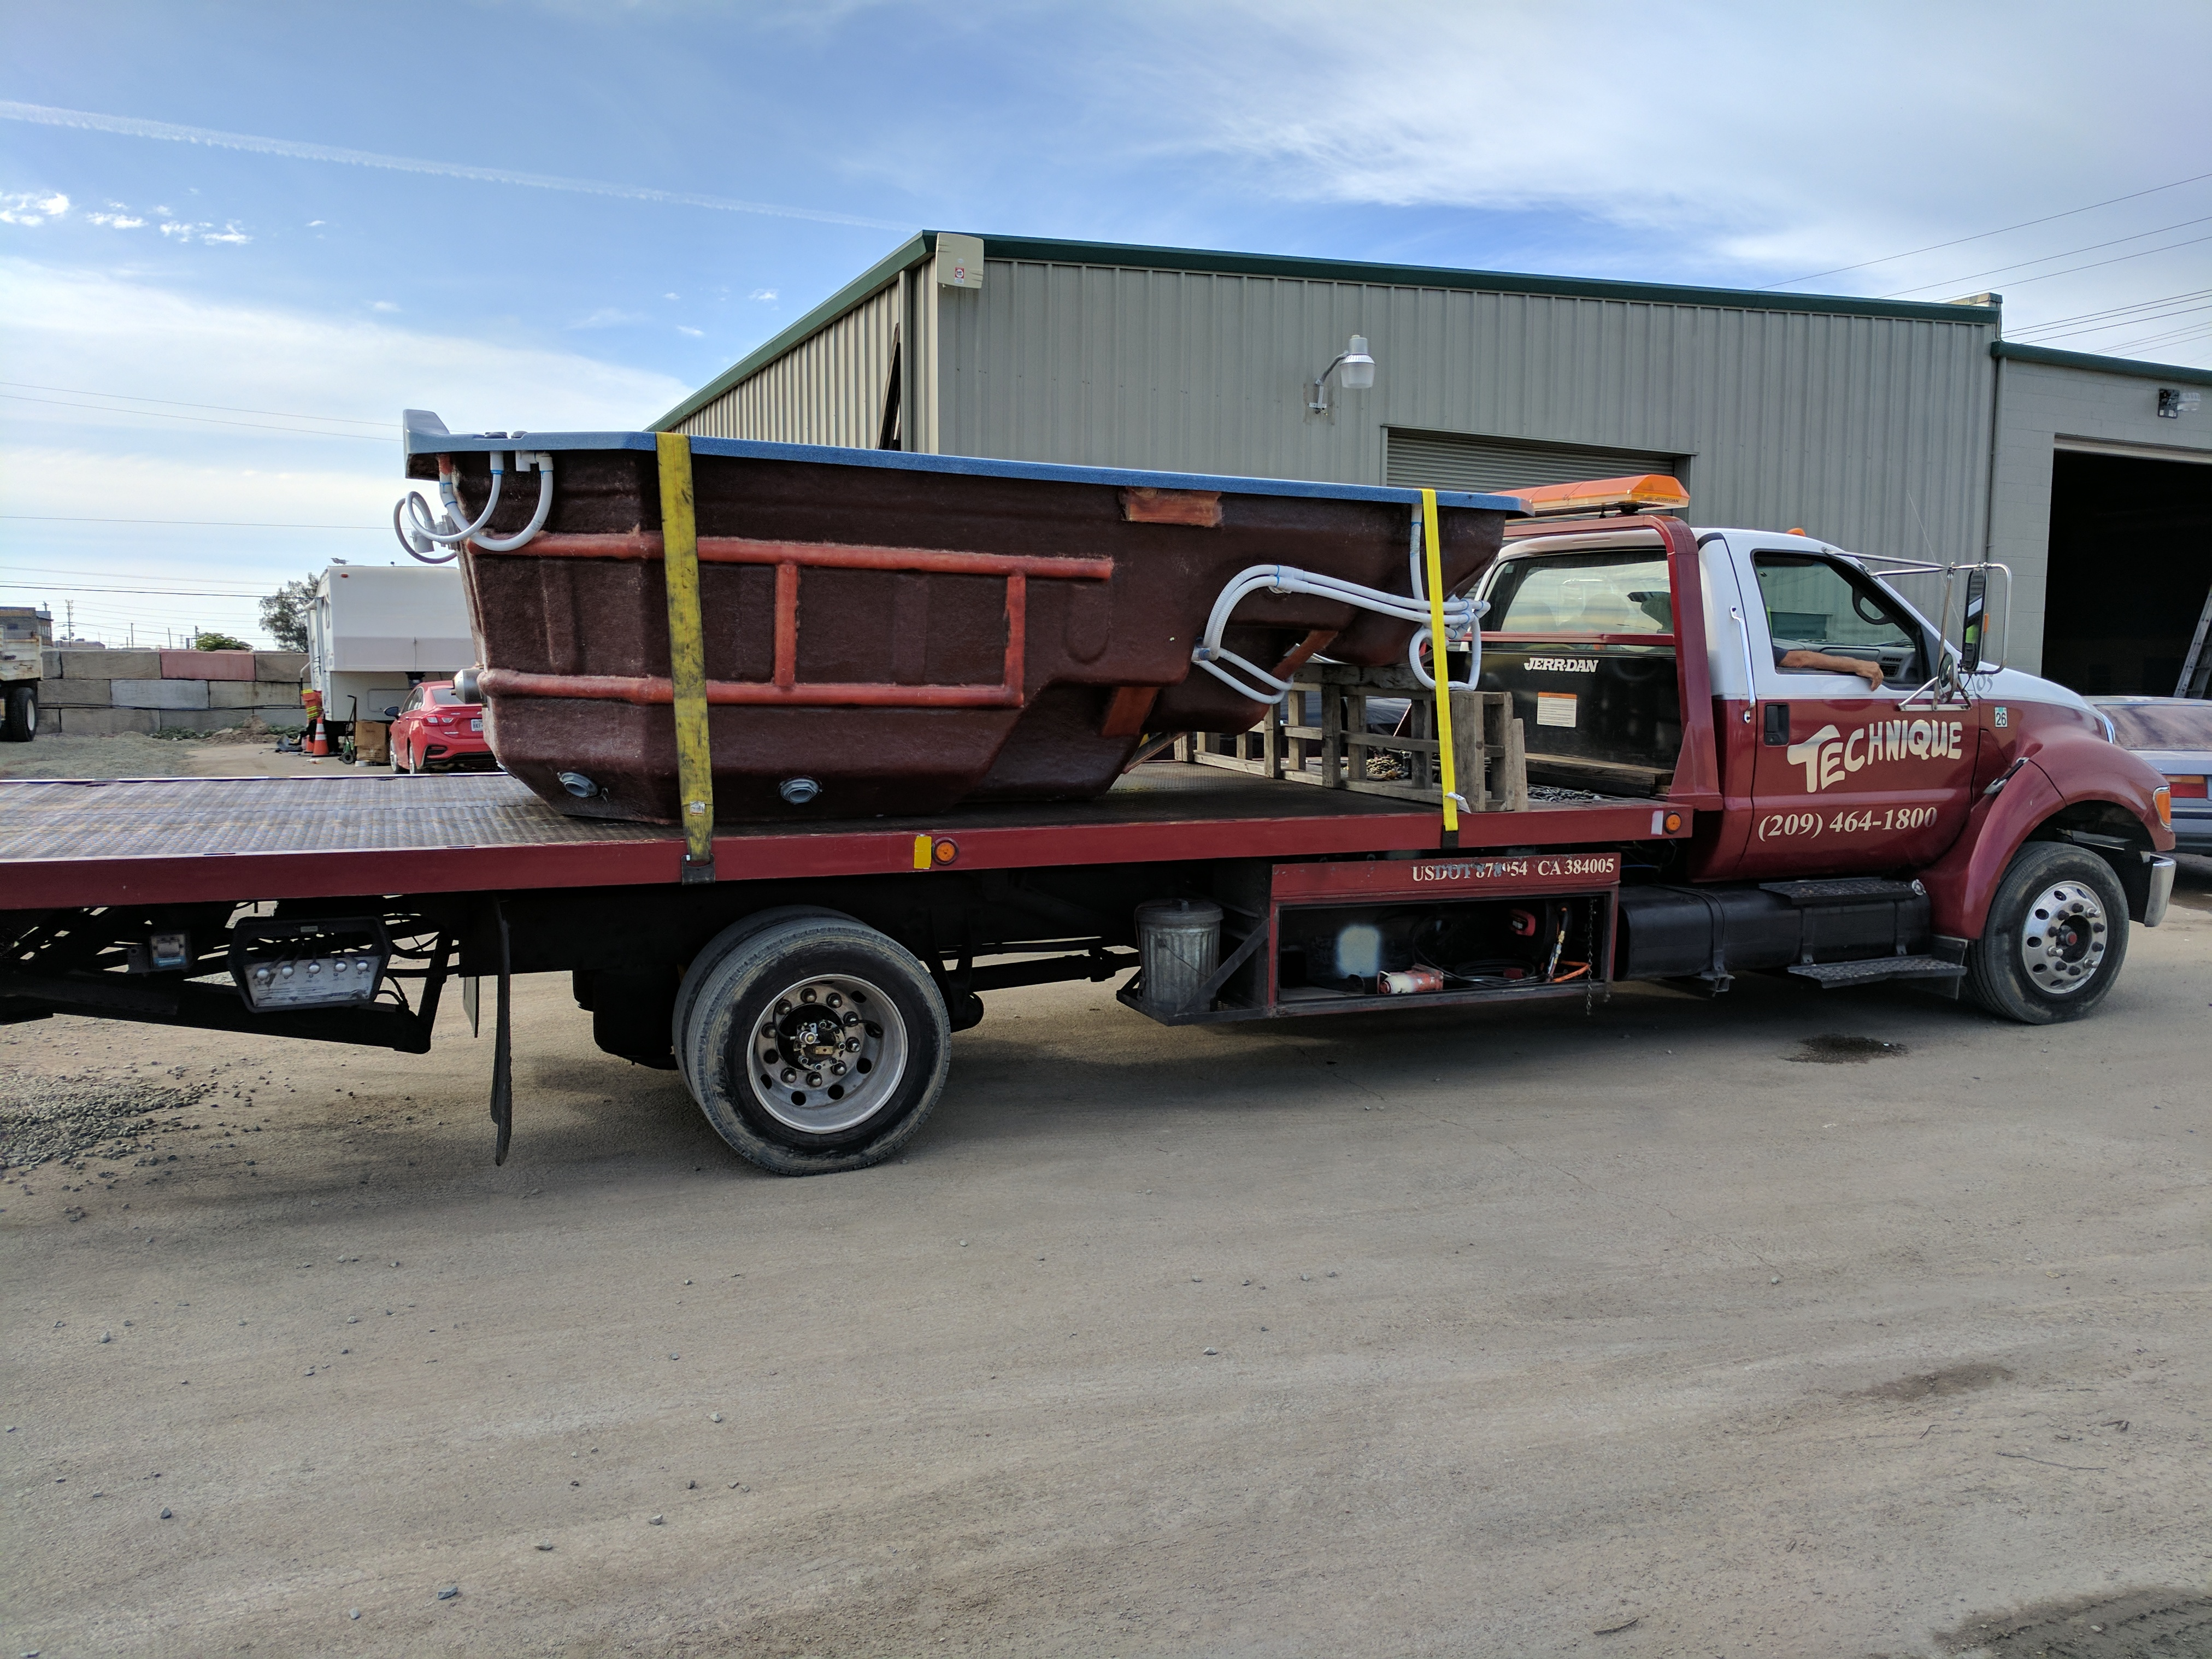 Tow Truck Stockton Ca >> Technique Towing Heavy Hauling And Equipment Transport In